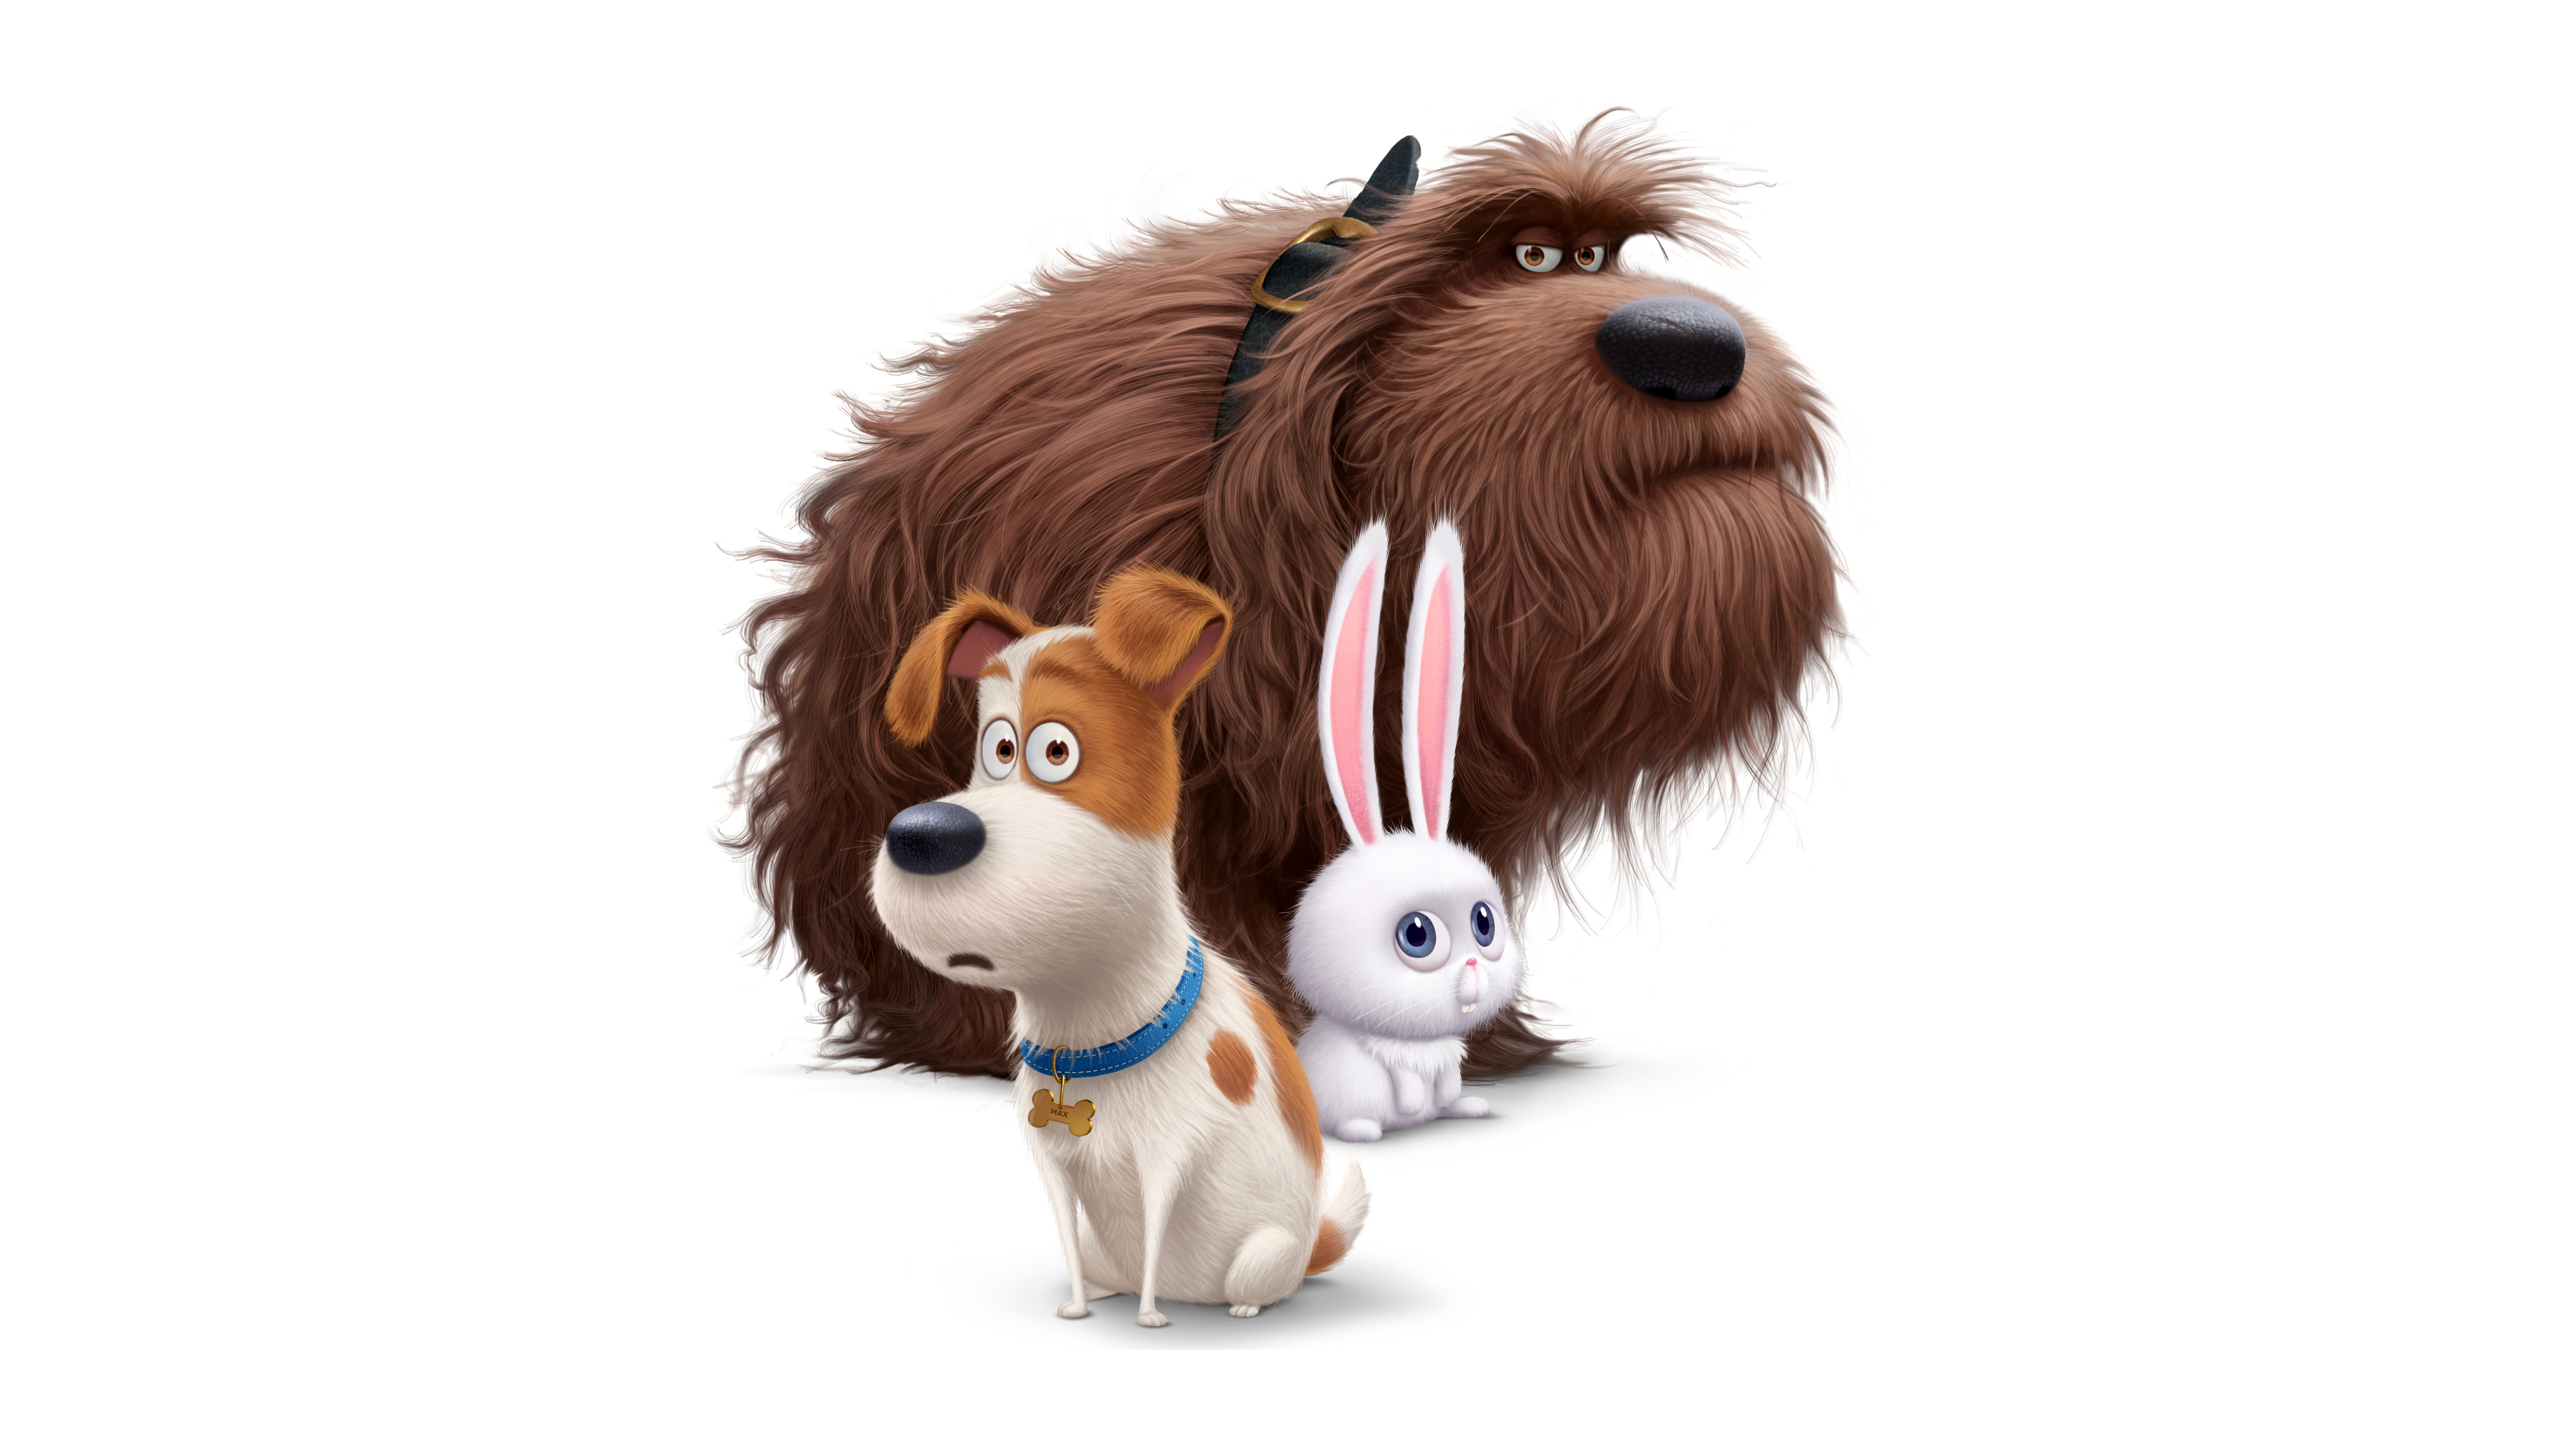 The Secret Life Of Pets 4k 8k Wallpapers In Jpg Format For Free Download